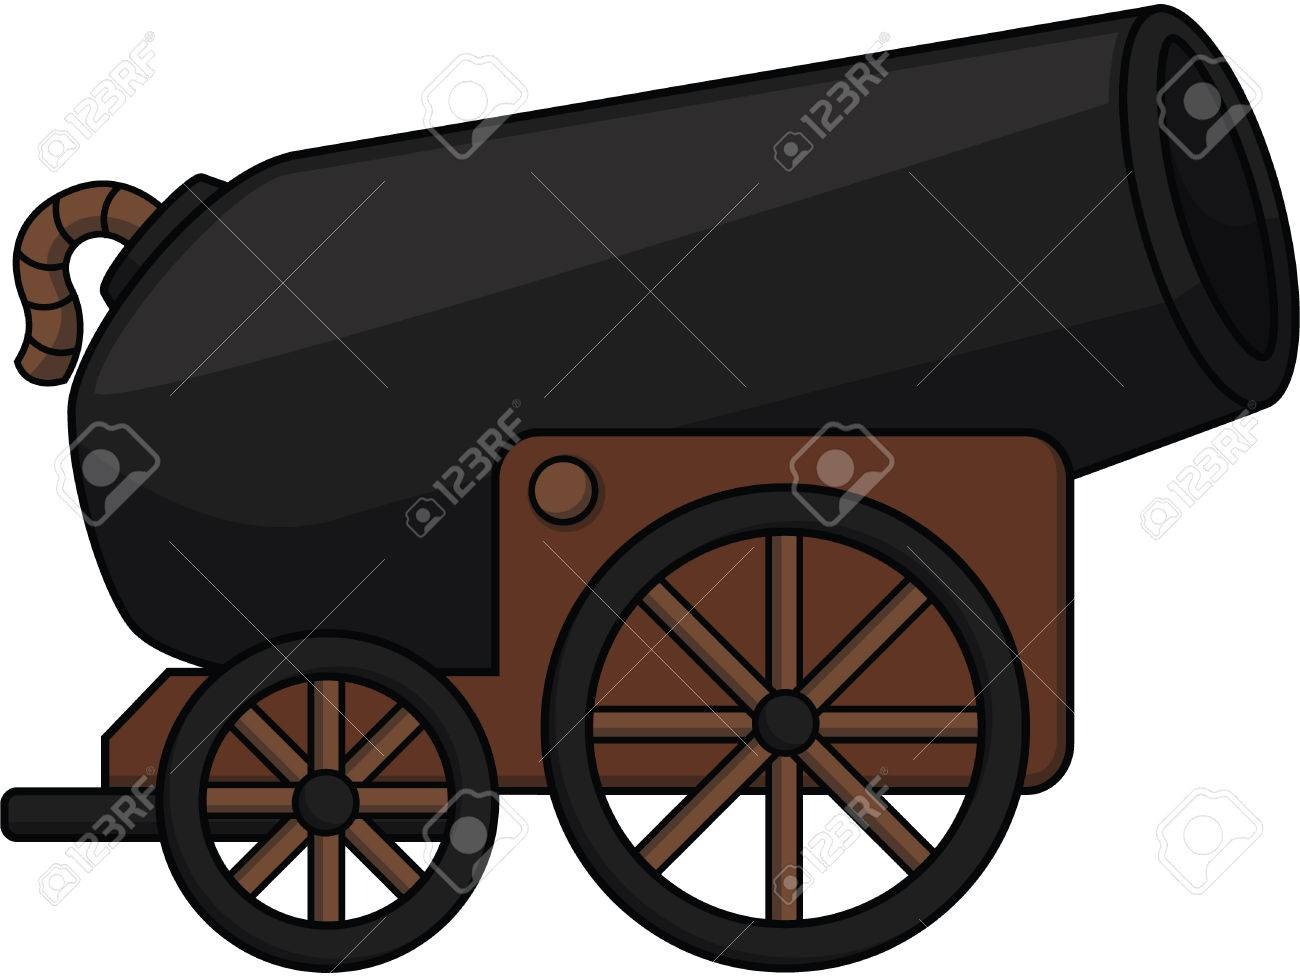 cannon ball cartoon illustration royalty free cliparts, vectors, and